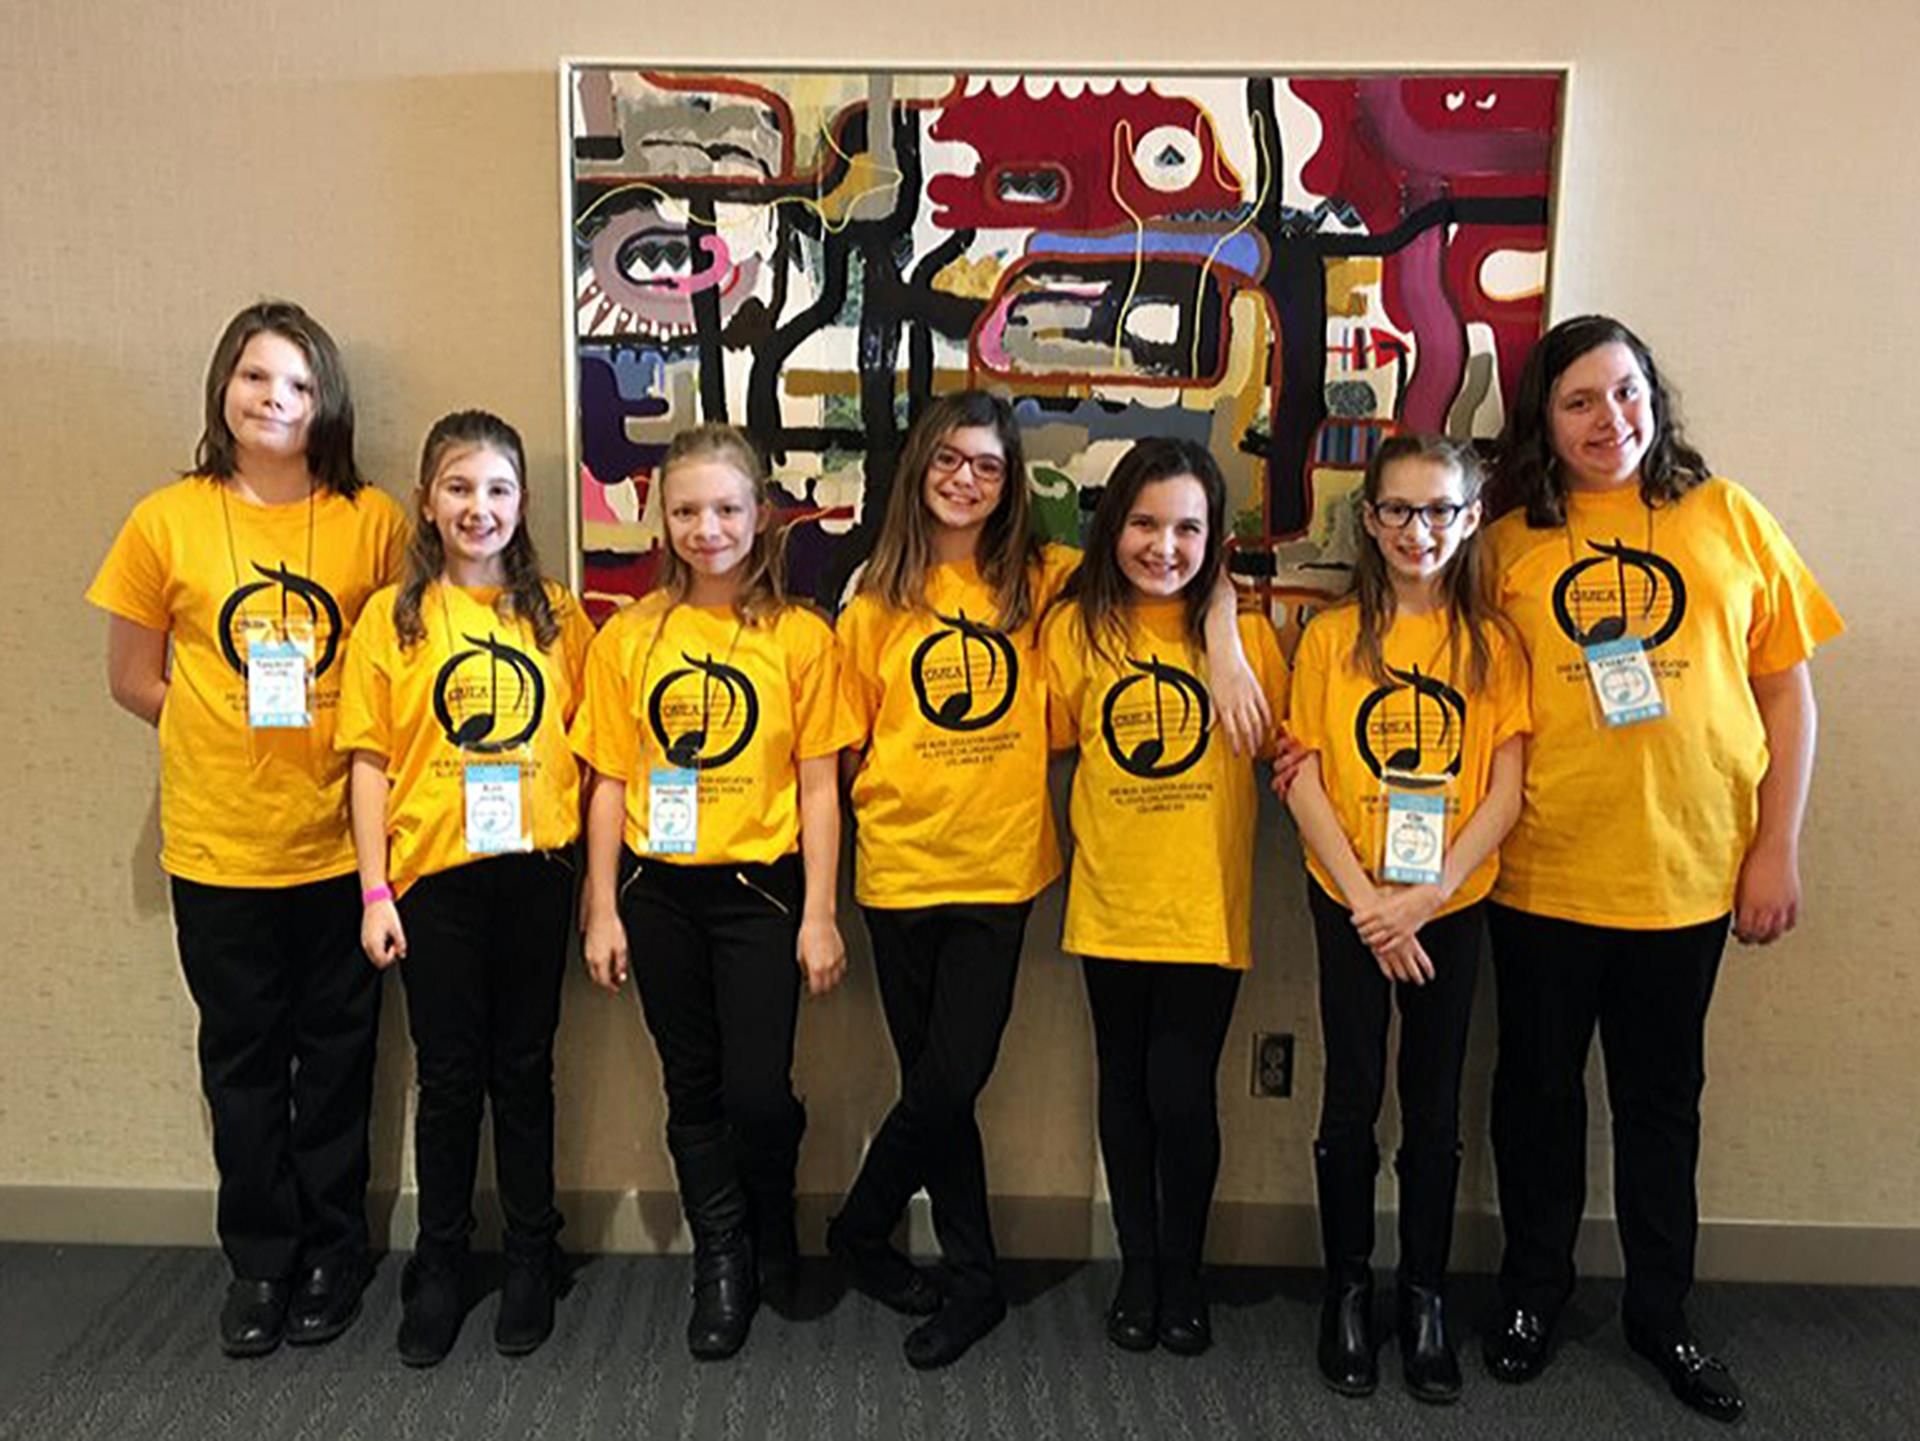 Perry Middle School fifth graders selected to perform with the 2018 Ohio Music Education Association's All-State Children's Chorus are (from left to right), Spencer Kilpatrick, Aria Lombardo, Hannah Whittaker, Jillian Roberts, Madelyn Rupert, Ella McMurtrie, and Victoria Collins.